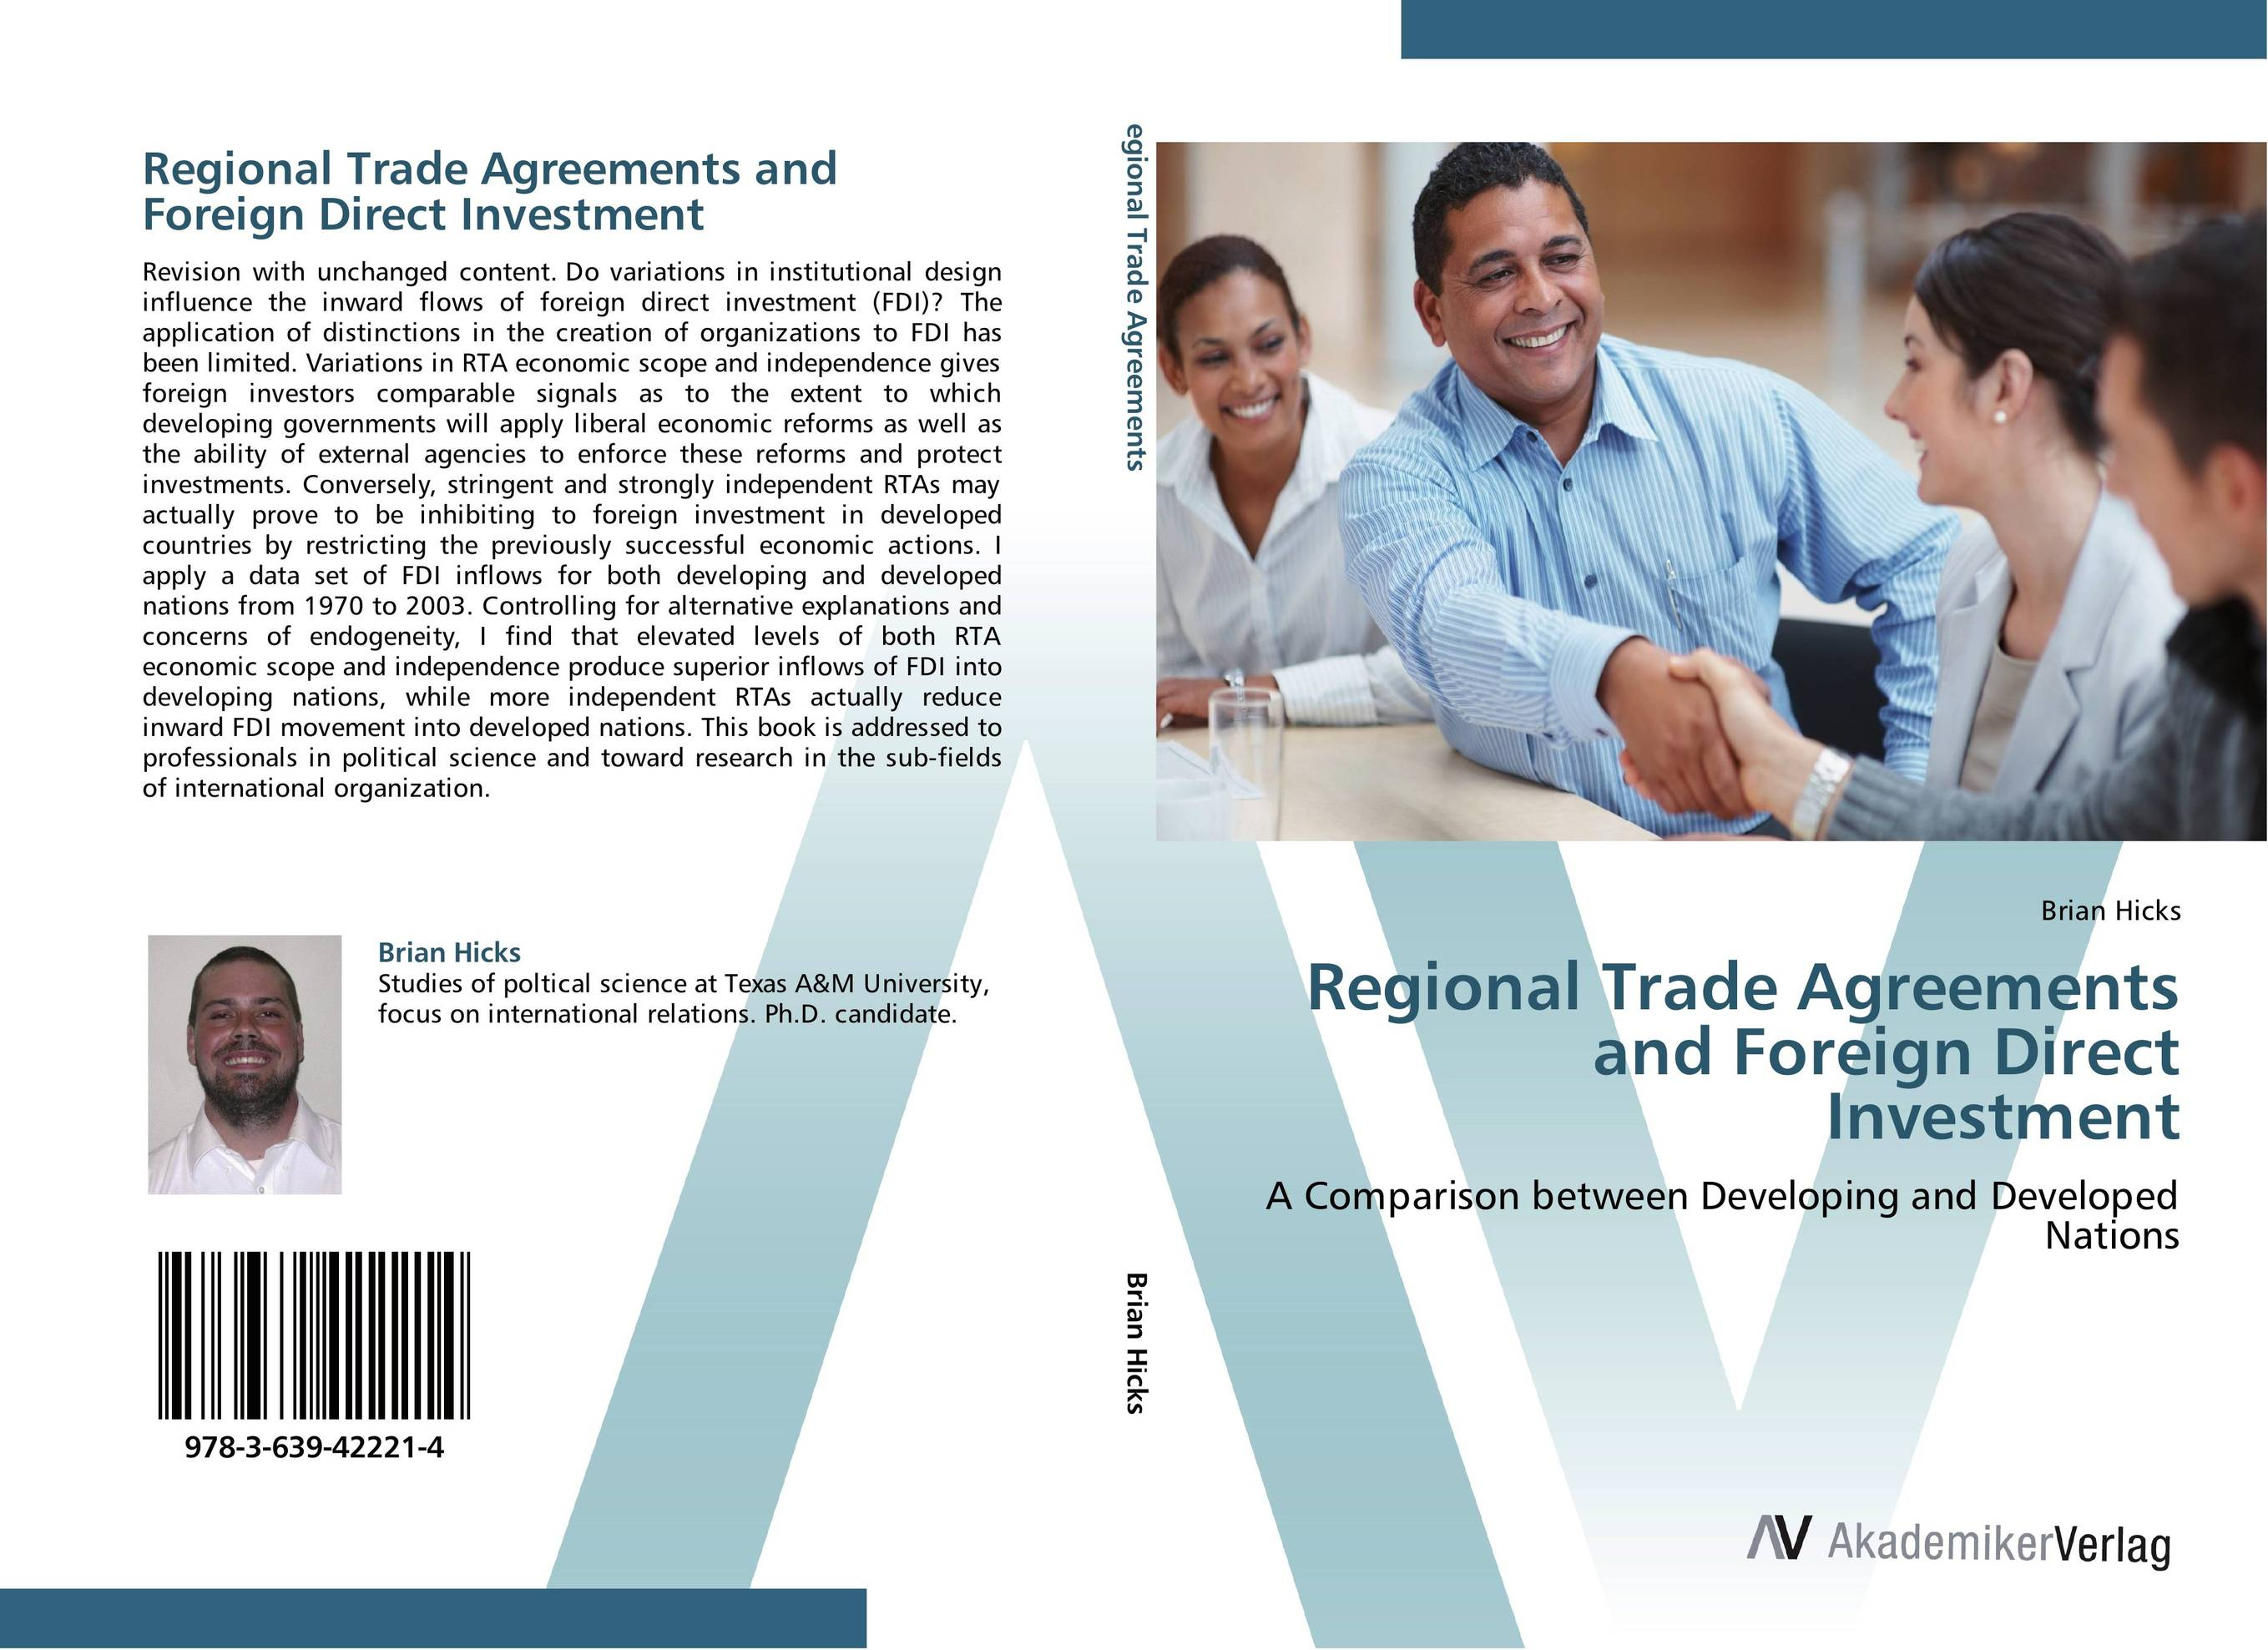 Regional Trade Agreements and Foreign Direct Investment regional trade agreements